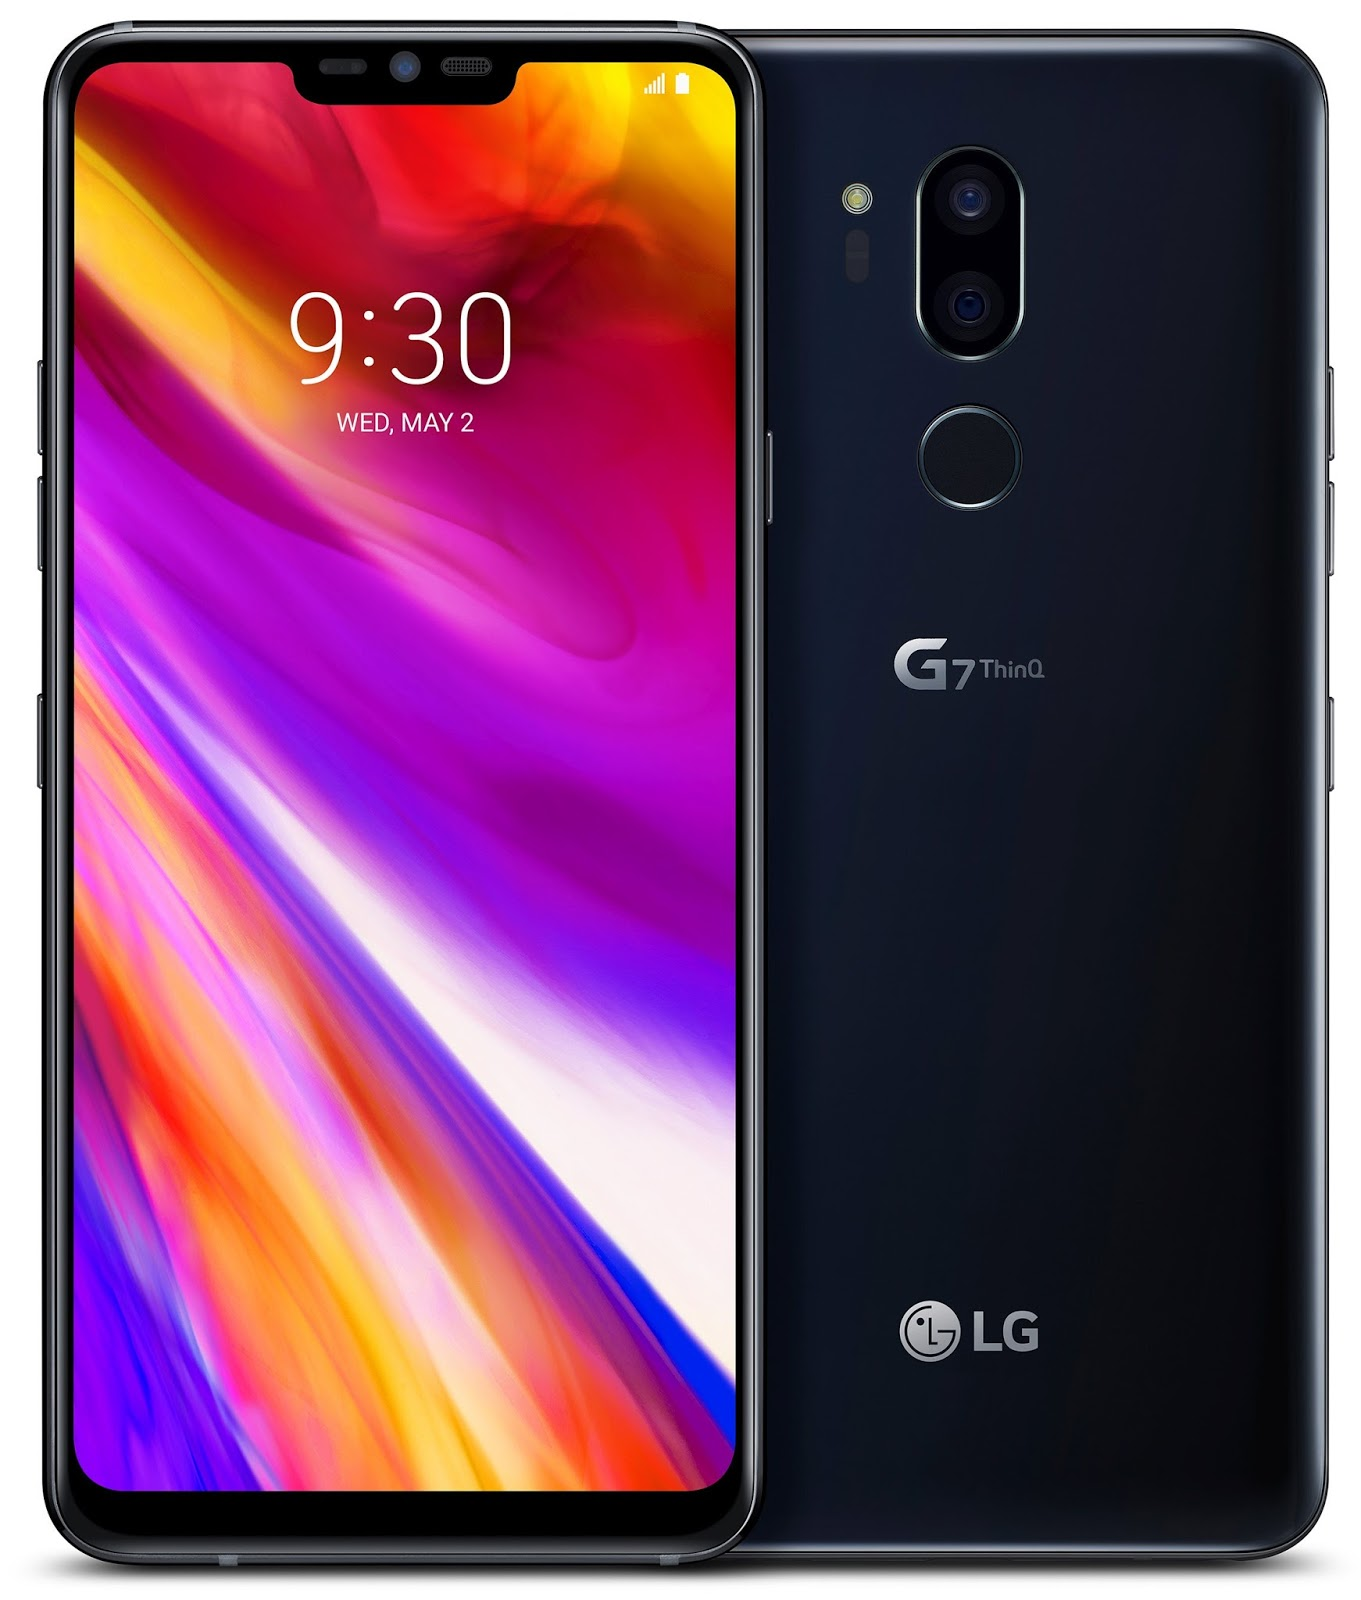 LG G7 ThinQ And Plus Pre Orders To Start On SK Telecom KT Uplus In May 11